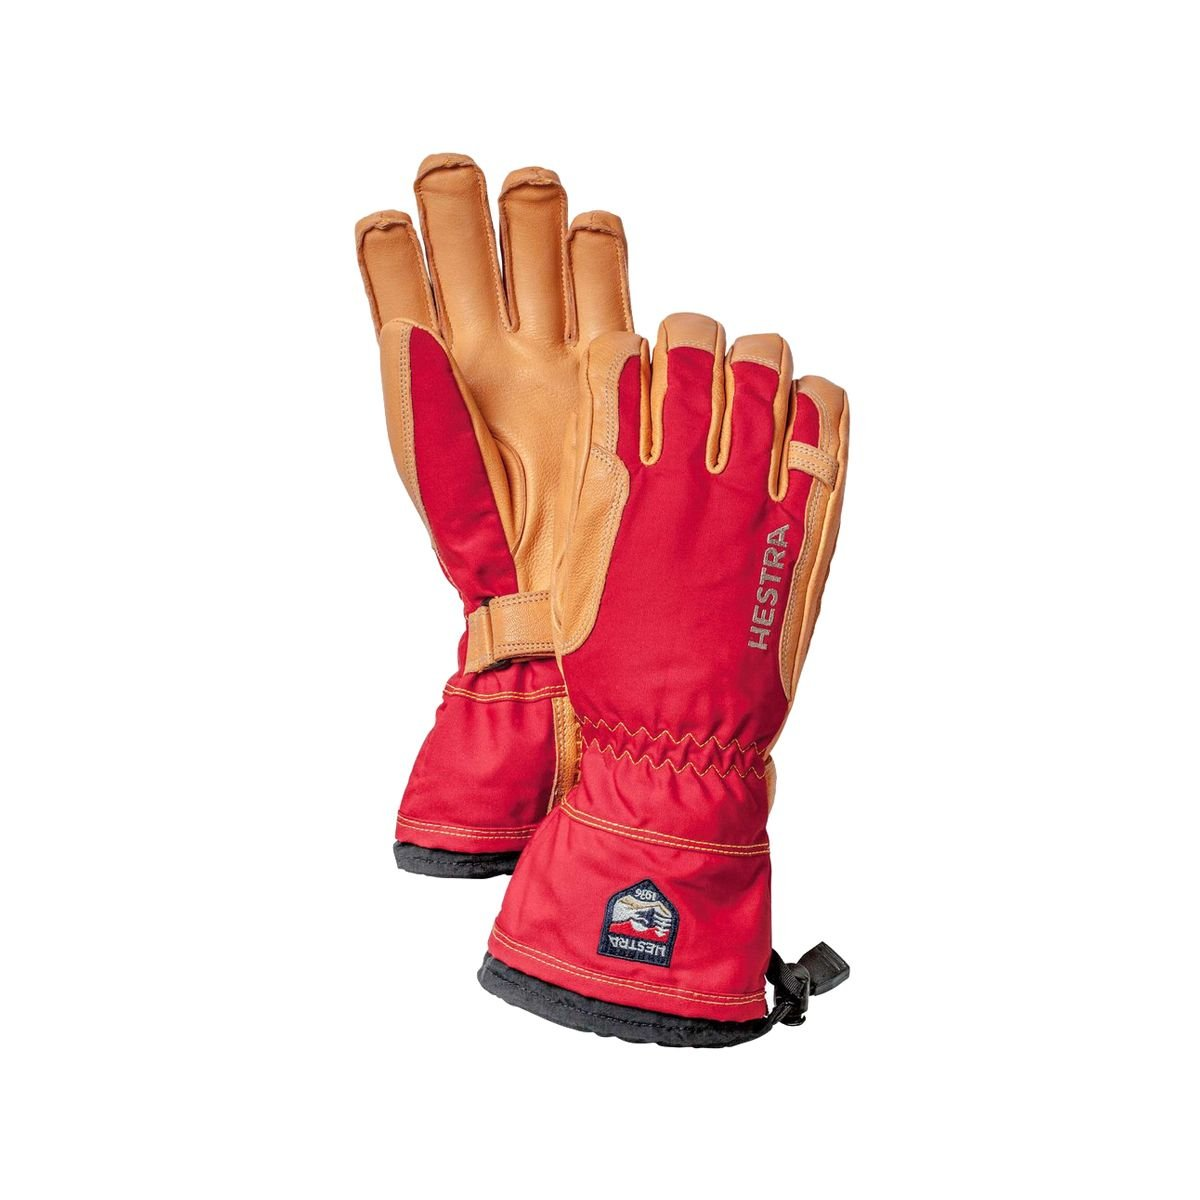 Hestra Narvik Wool Terry Glove Red, 9